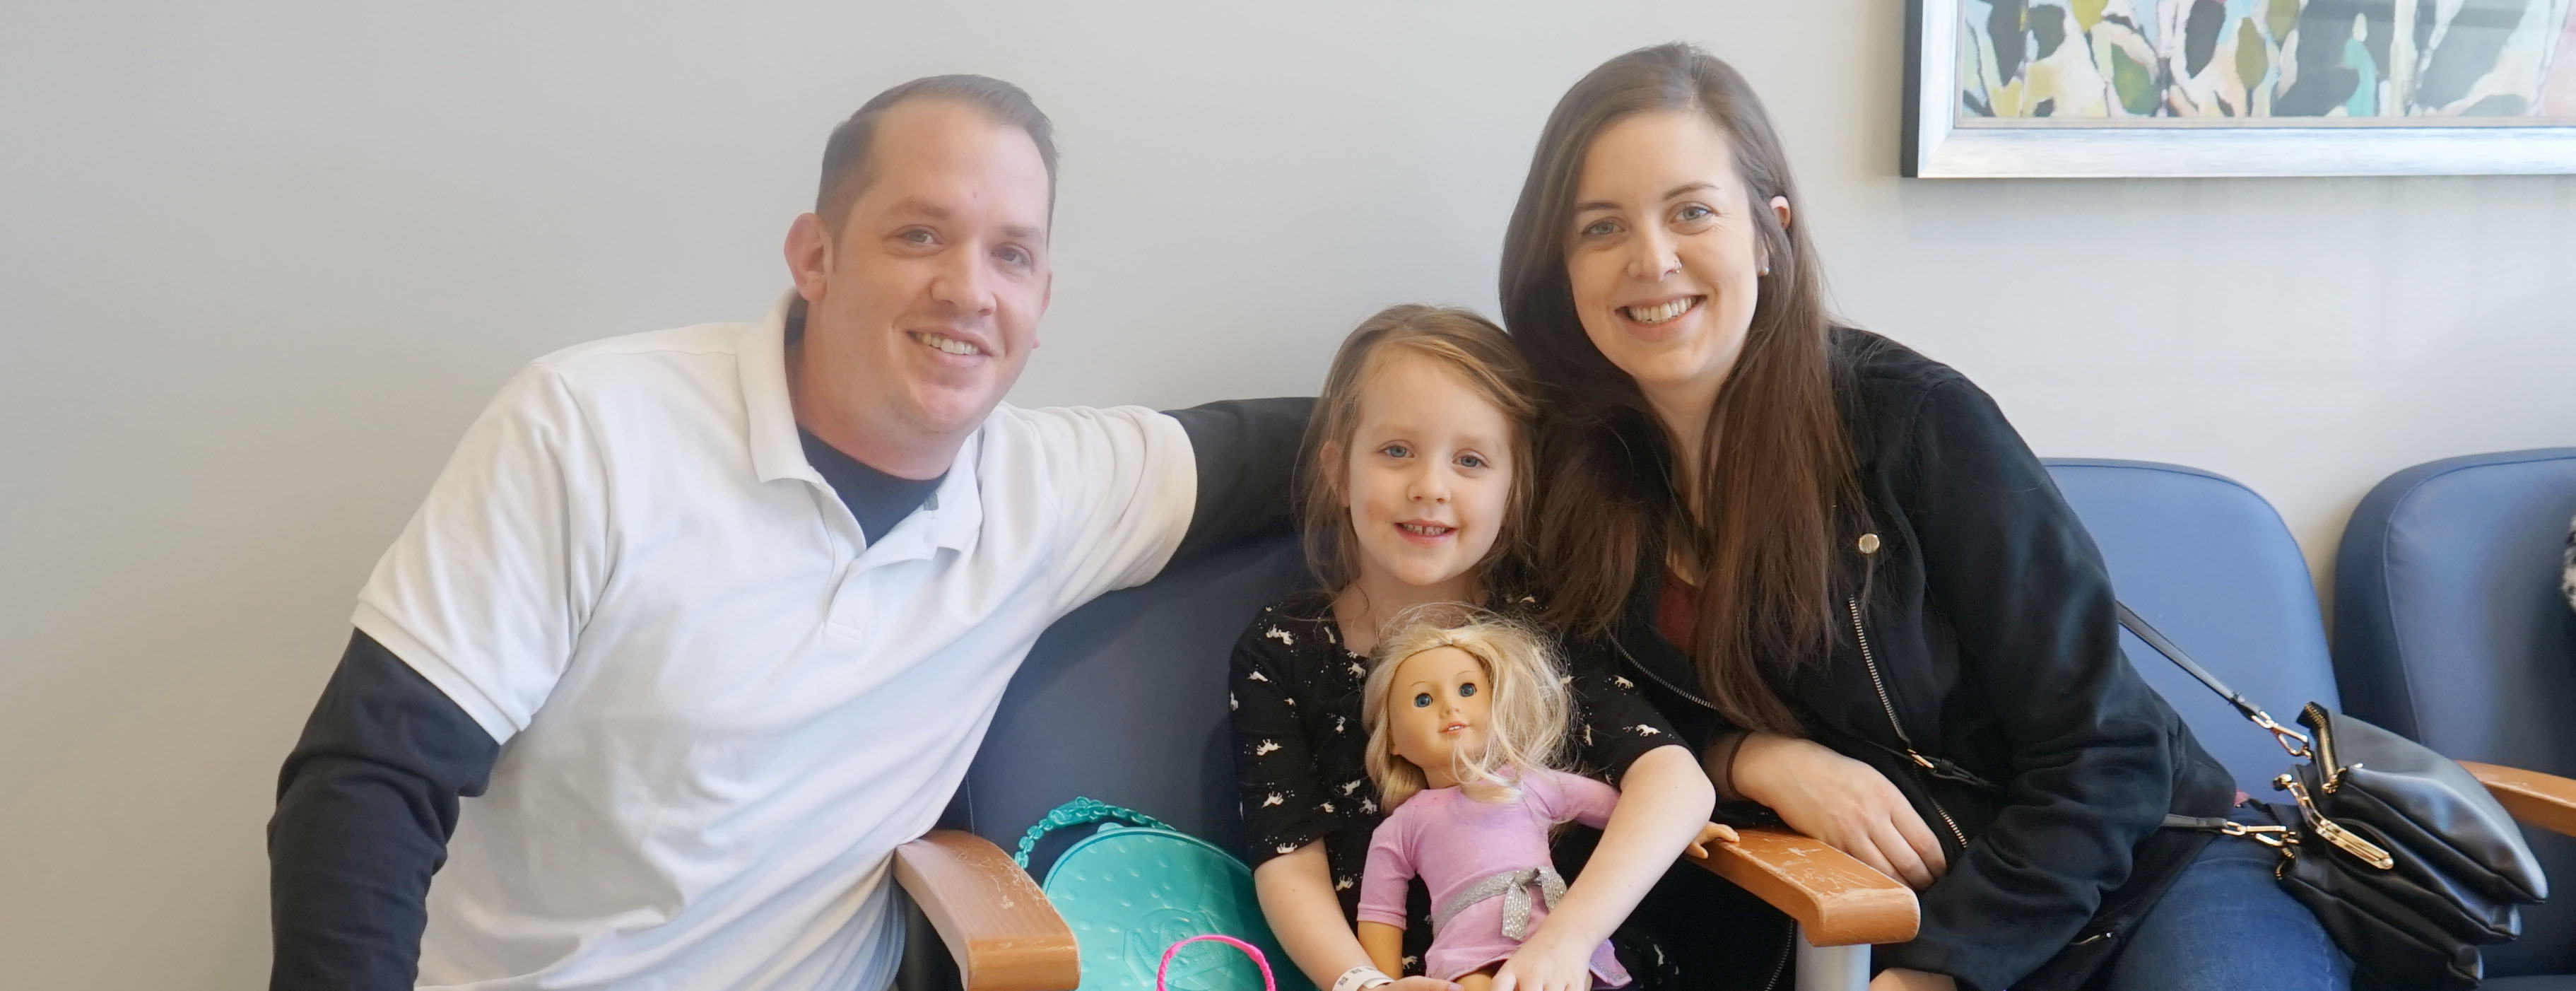 Patient diagnosed with Polio-like AFM illness goes home